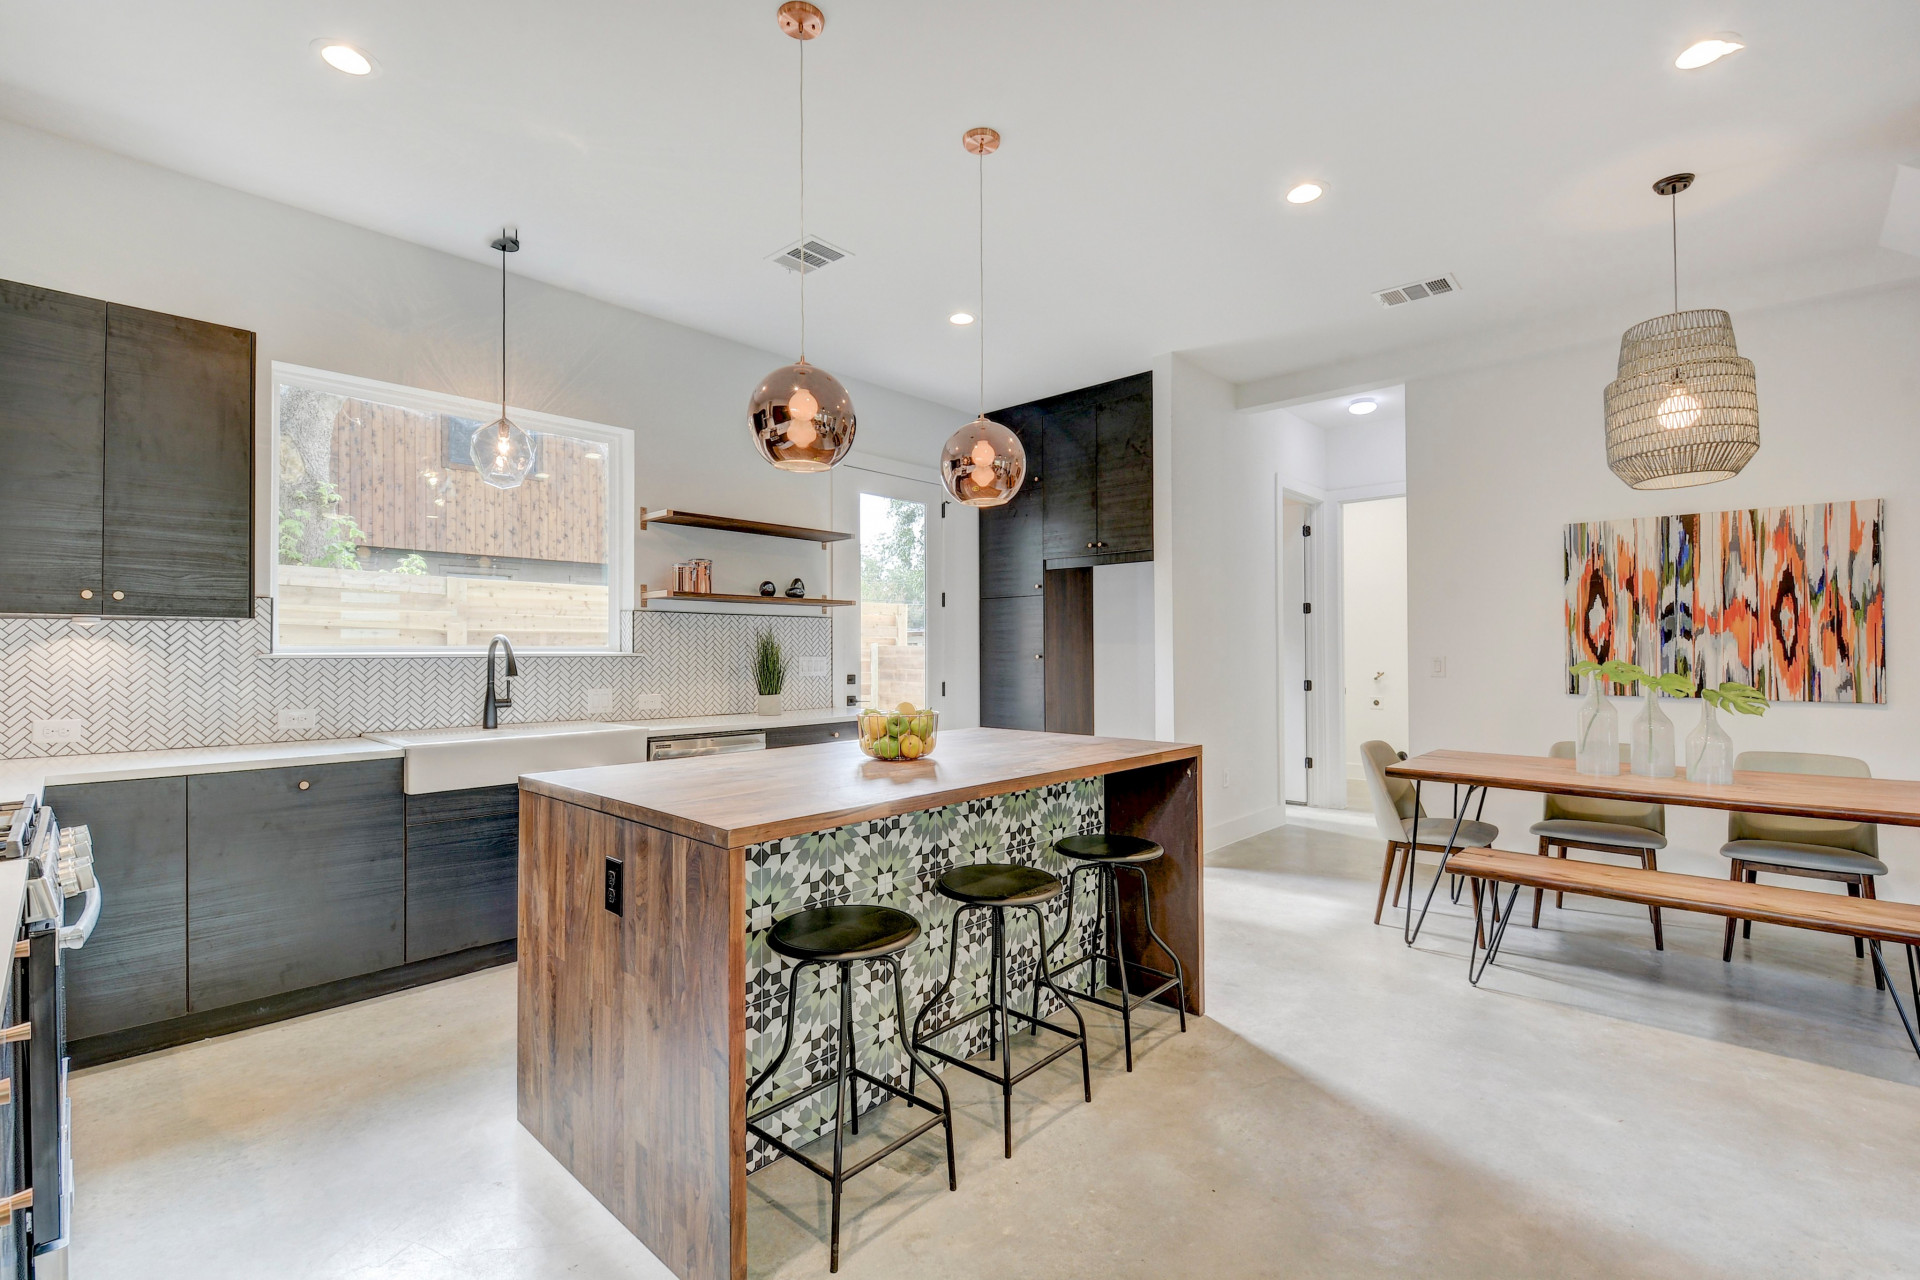 Modern Kitchen with Ikea cabinets, walnut butcher block with a waterfall edge, Rustico Casablanca Cement Tile, island, matte black faucet, and copper accents!